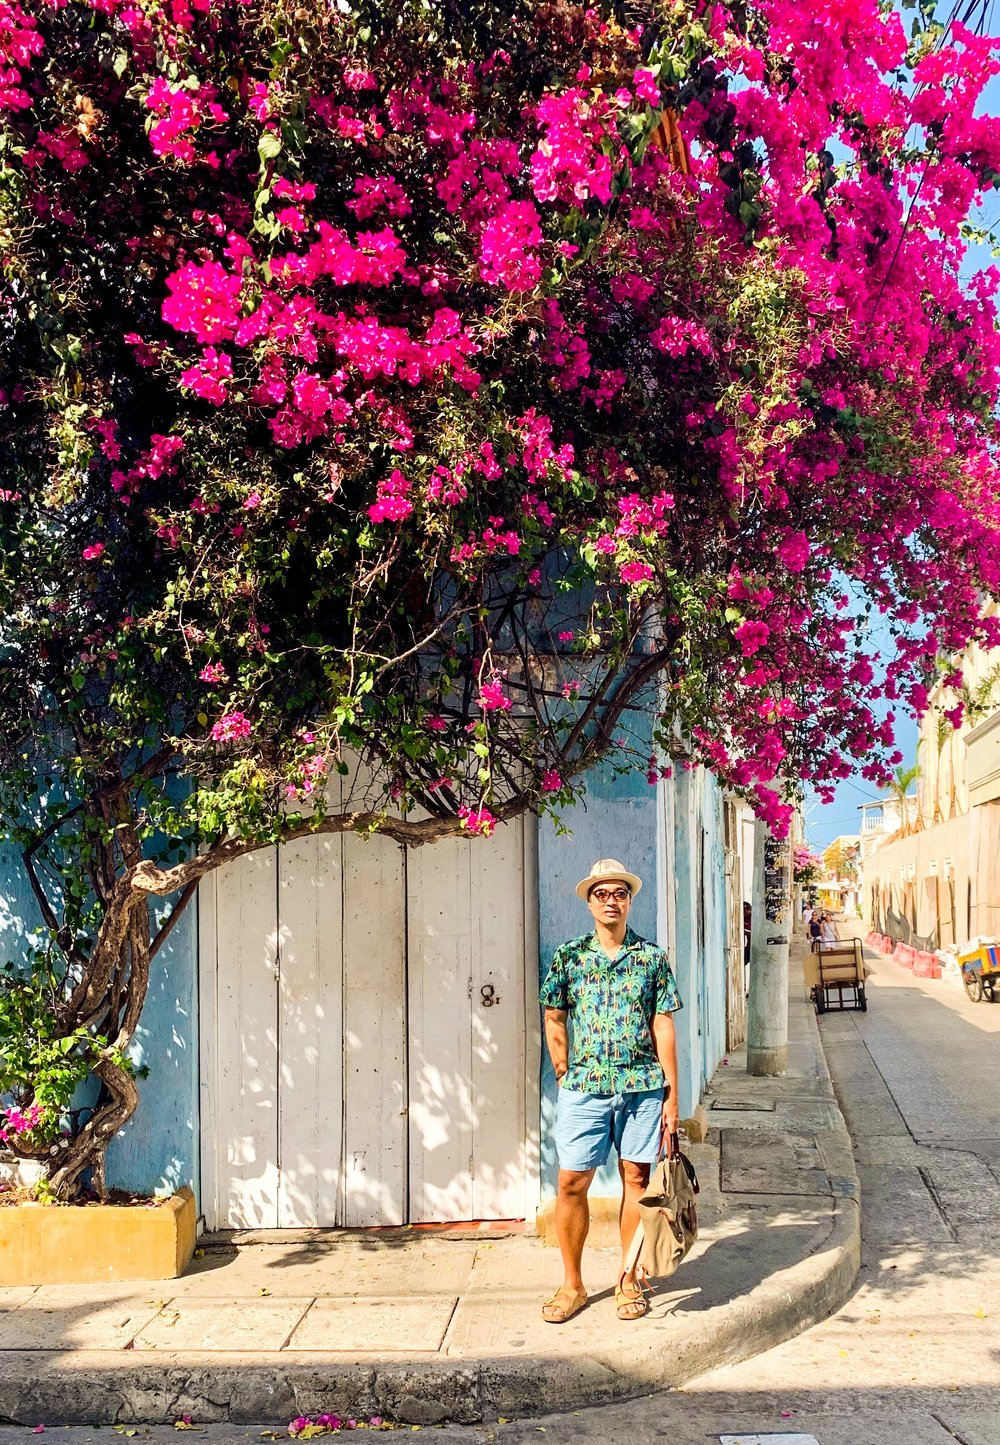 Every street corner in Cartagena was a photo shoot waiting to happen.